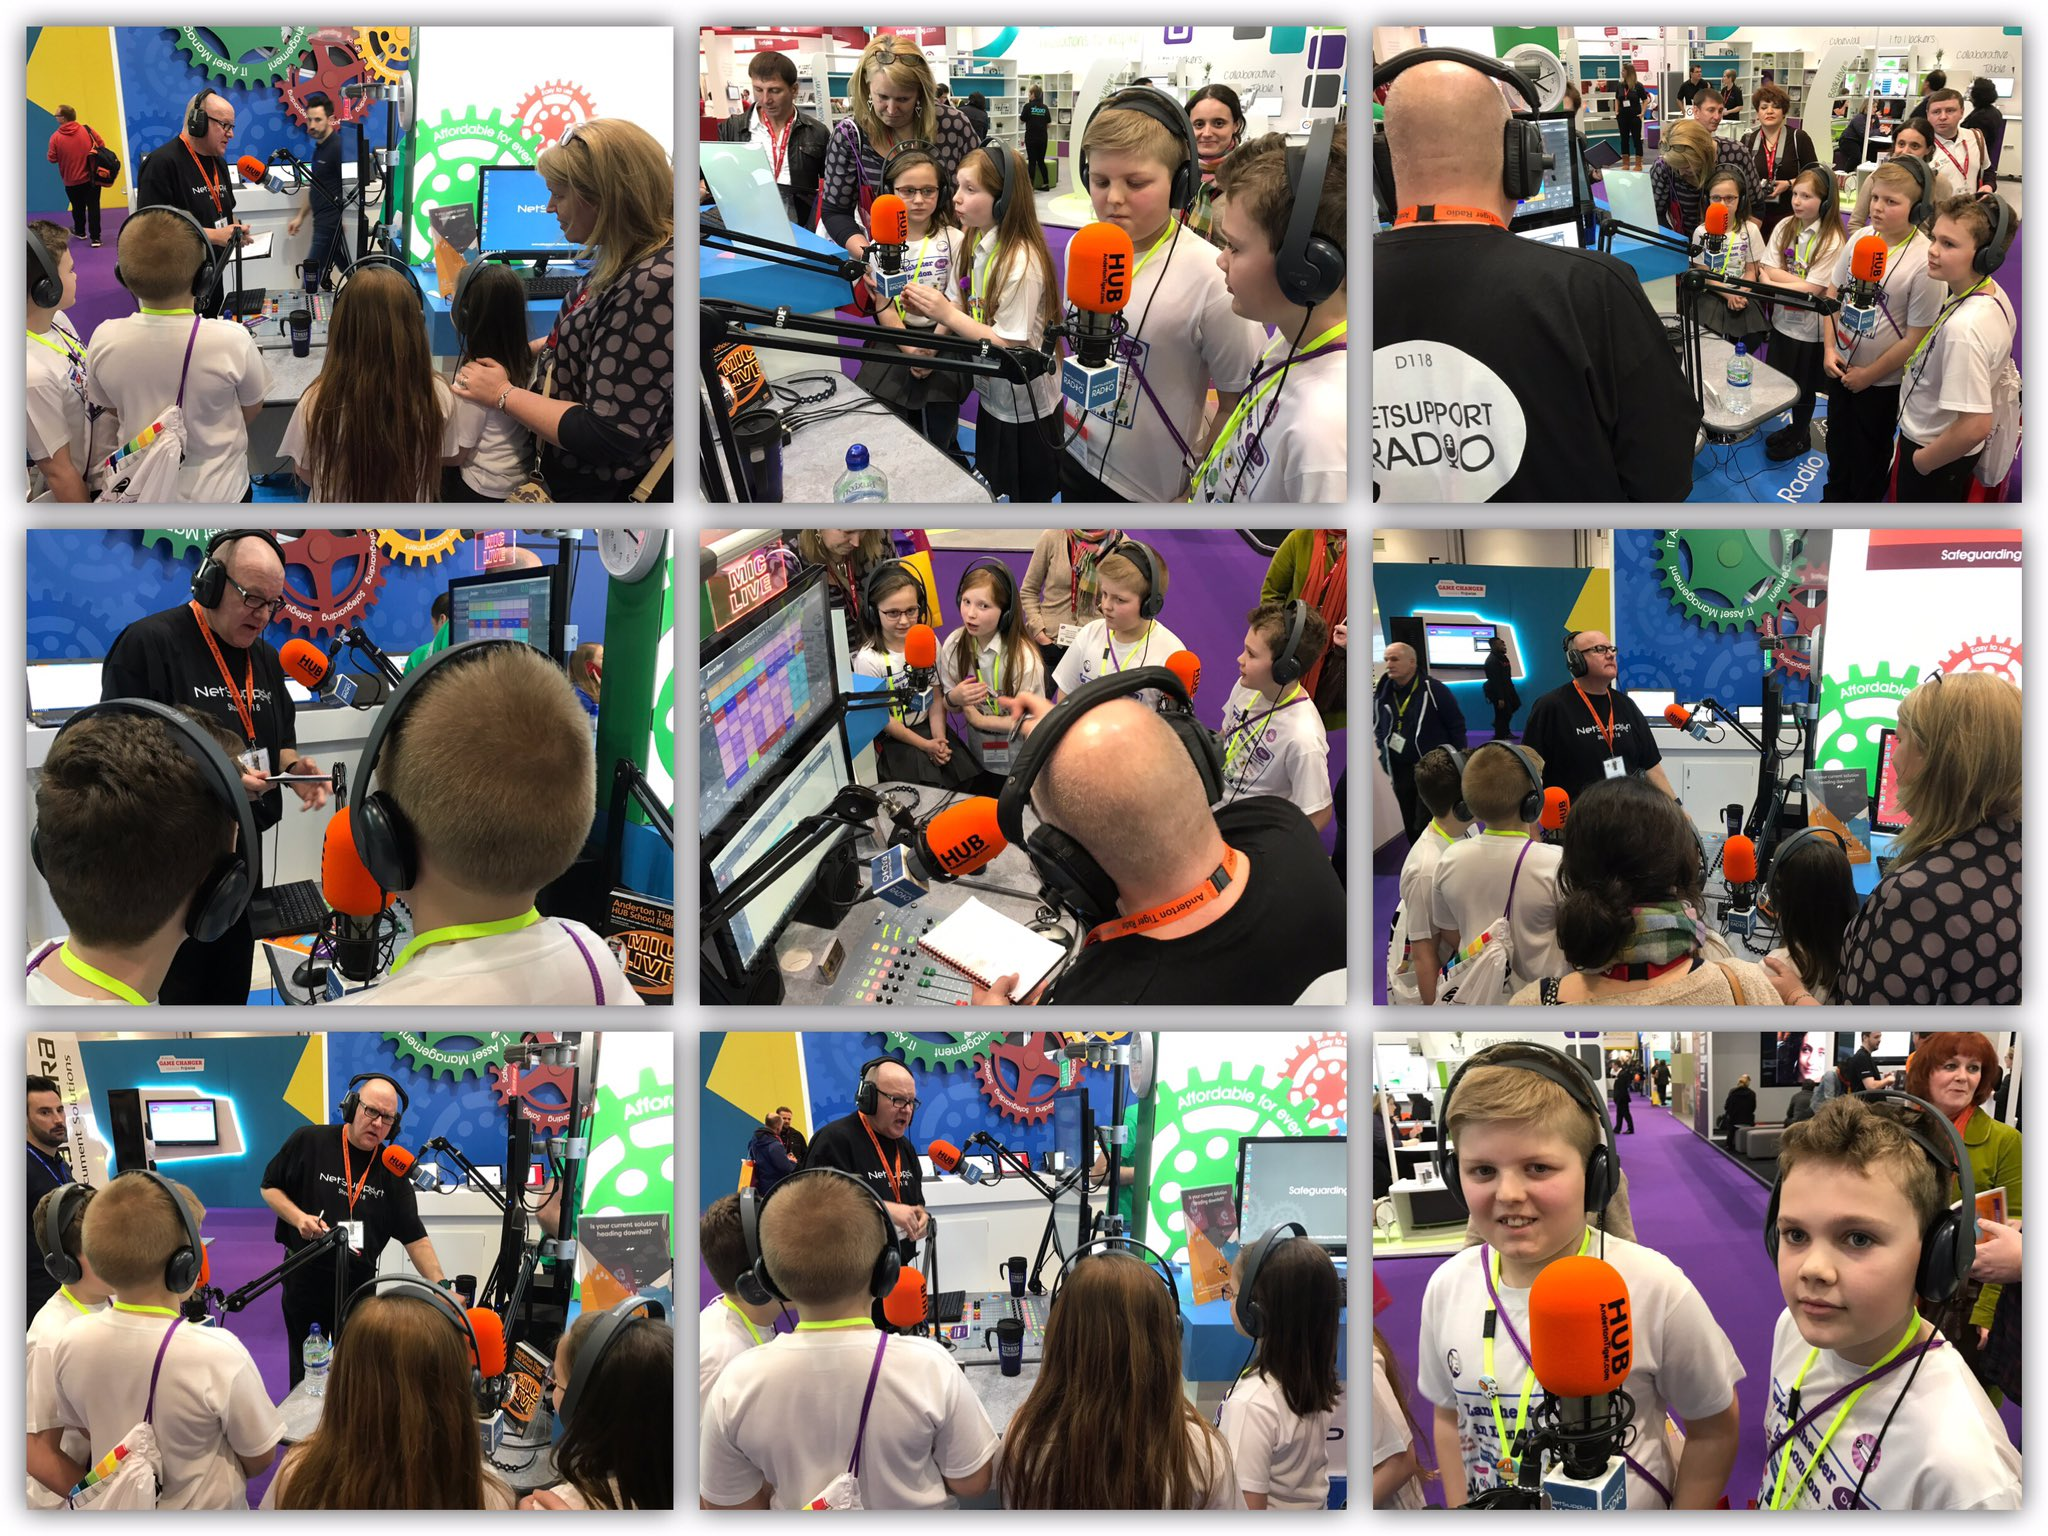 My @LanchesterEP Digital Leaders loved being part of @russellprue radio show @Bett_show Download podcast: https://t.co/Lce8J6aDx7 #Bett2017 https://t.co/51NvRQBzaE